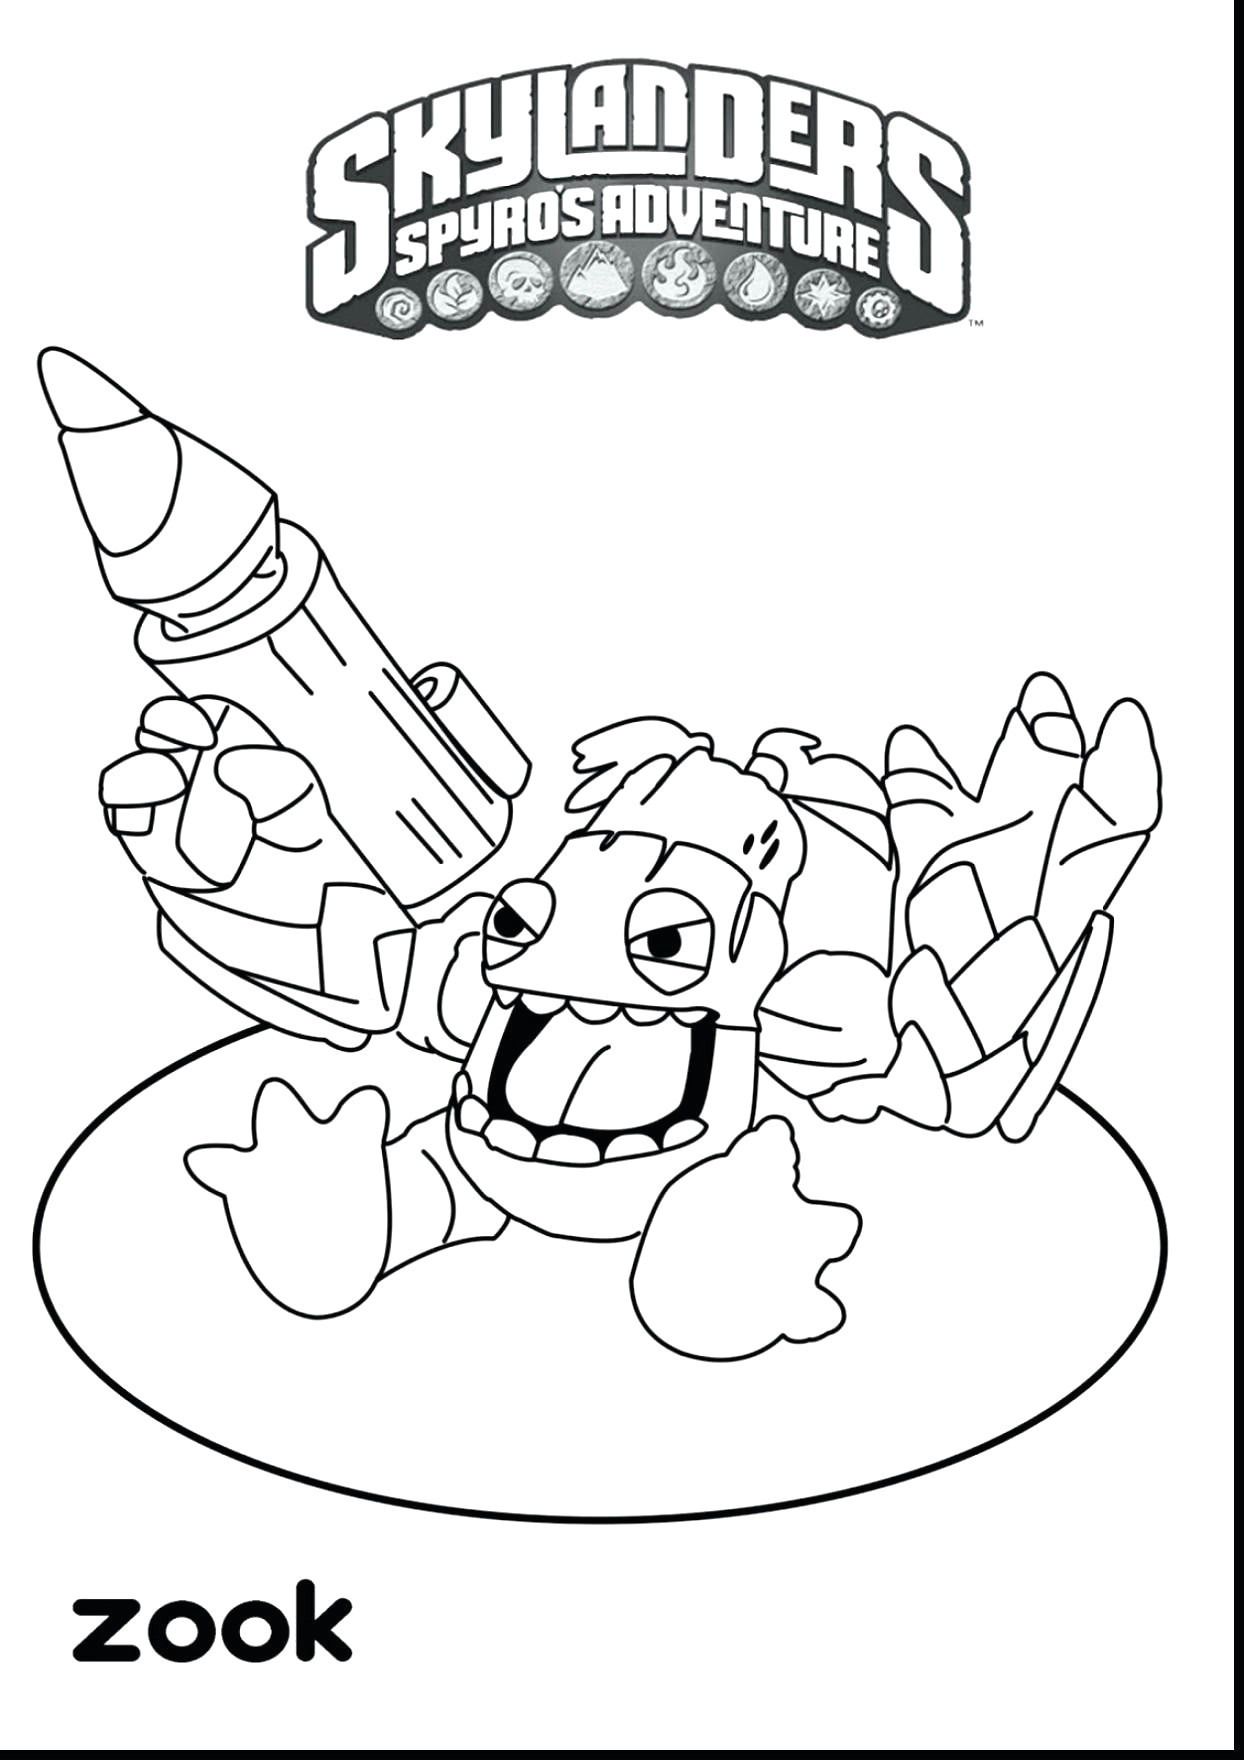 Cartoons Drawing with Color Www Colouring Pages Brilliant Easy to Draw Instruments Home Coloring